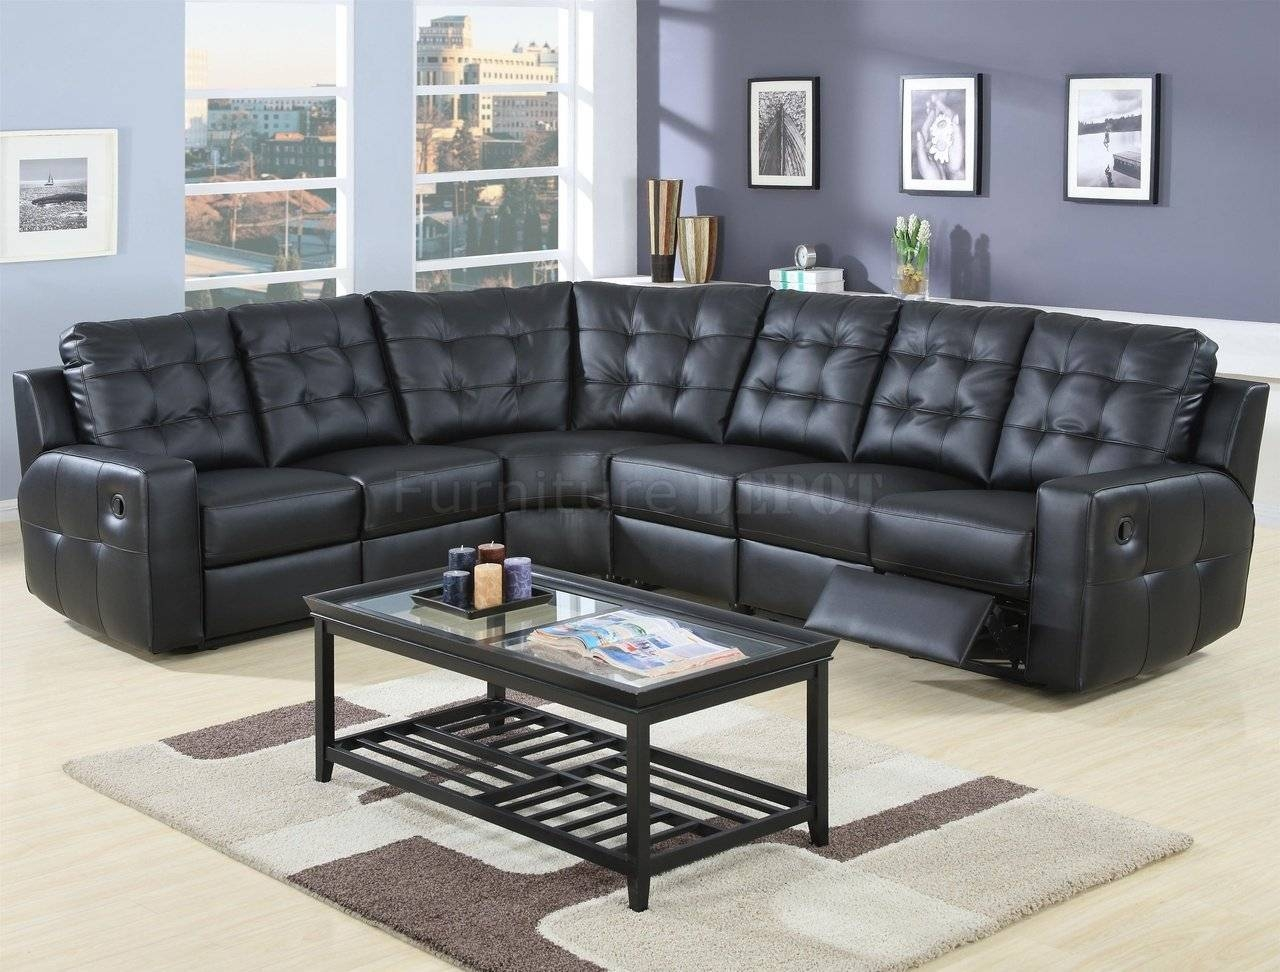 Furniture: Incredible Style Sectional Reclining Sofas For Your pertaining to Leather Sofa Sectionals For Sale (Image 8 of 30)